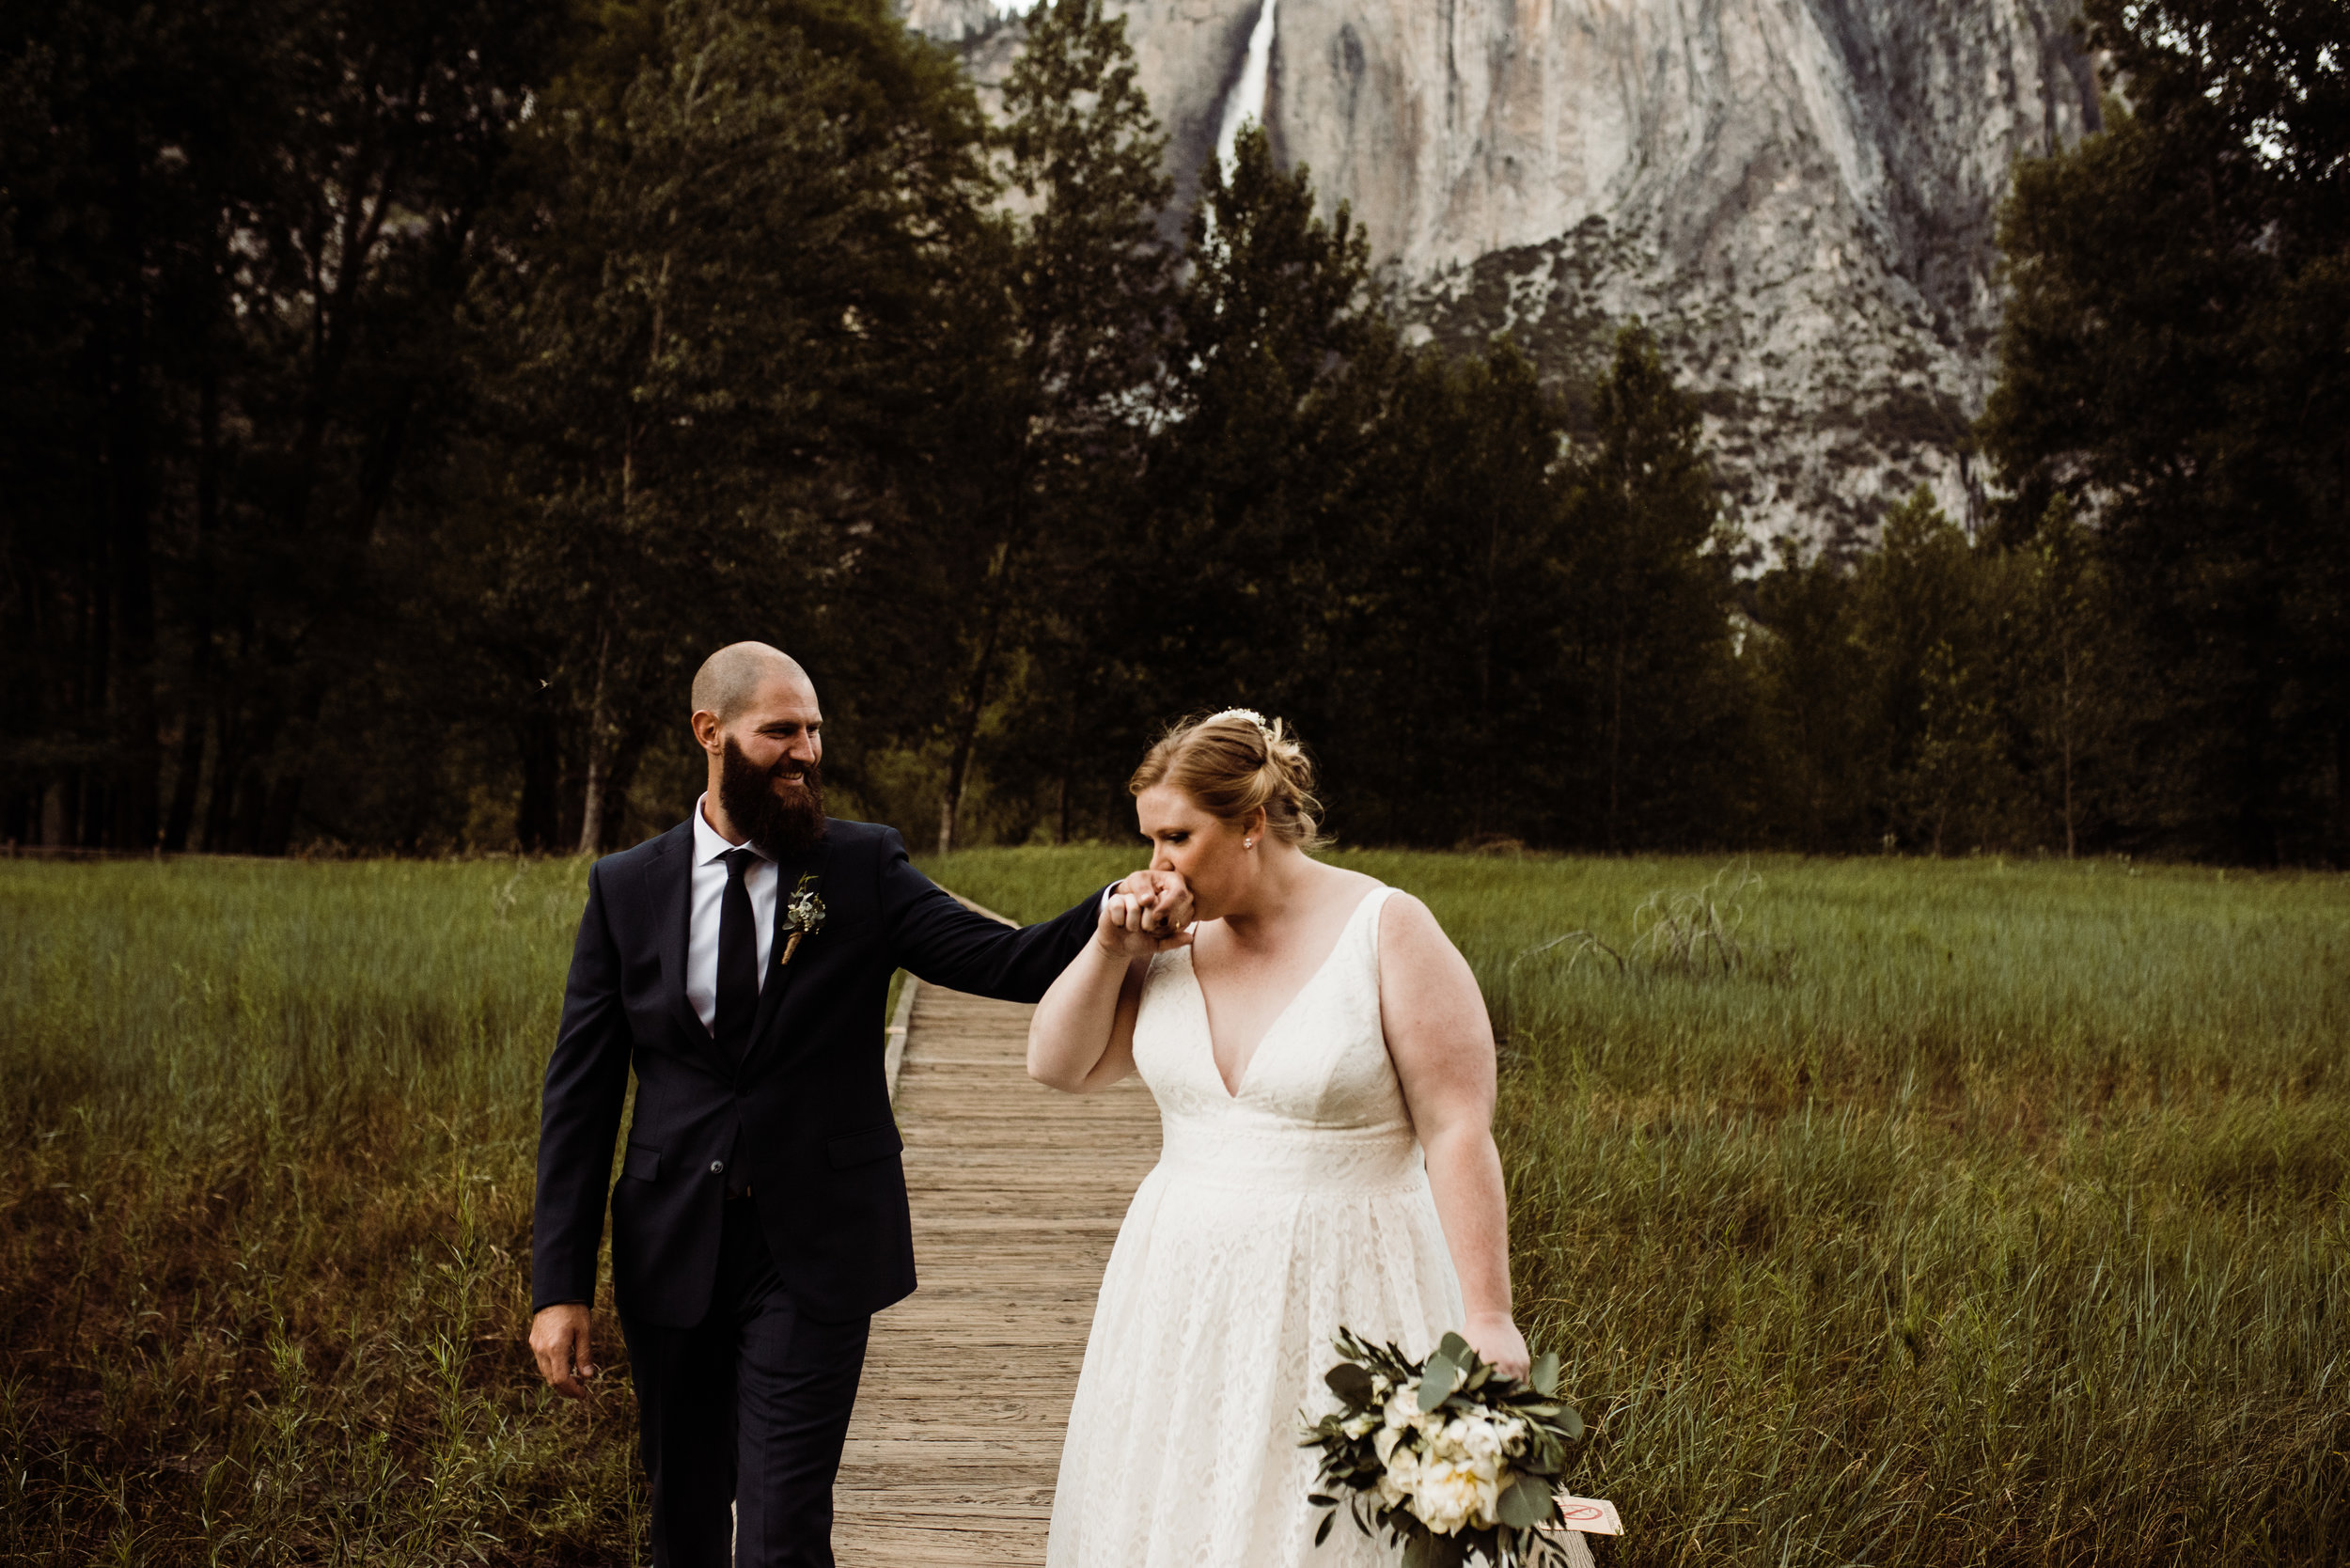 Romantic moment with bride and groom in Yosemite Valley